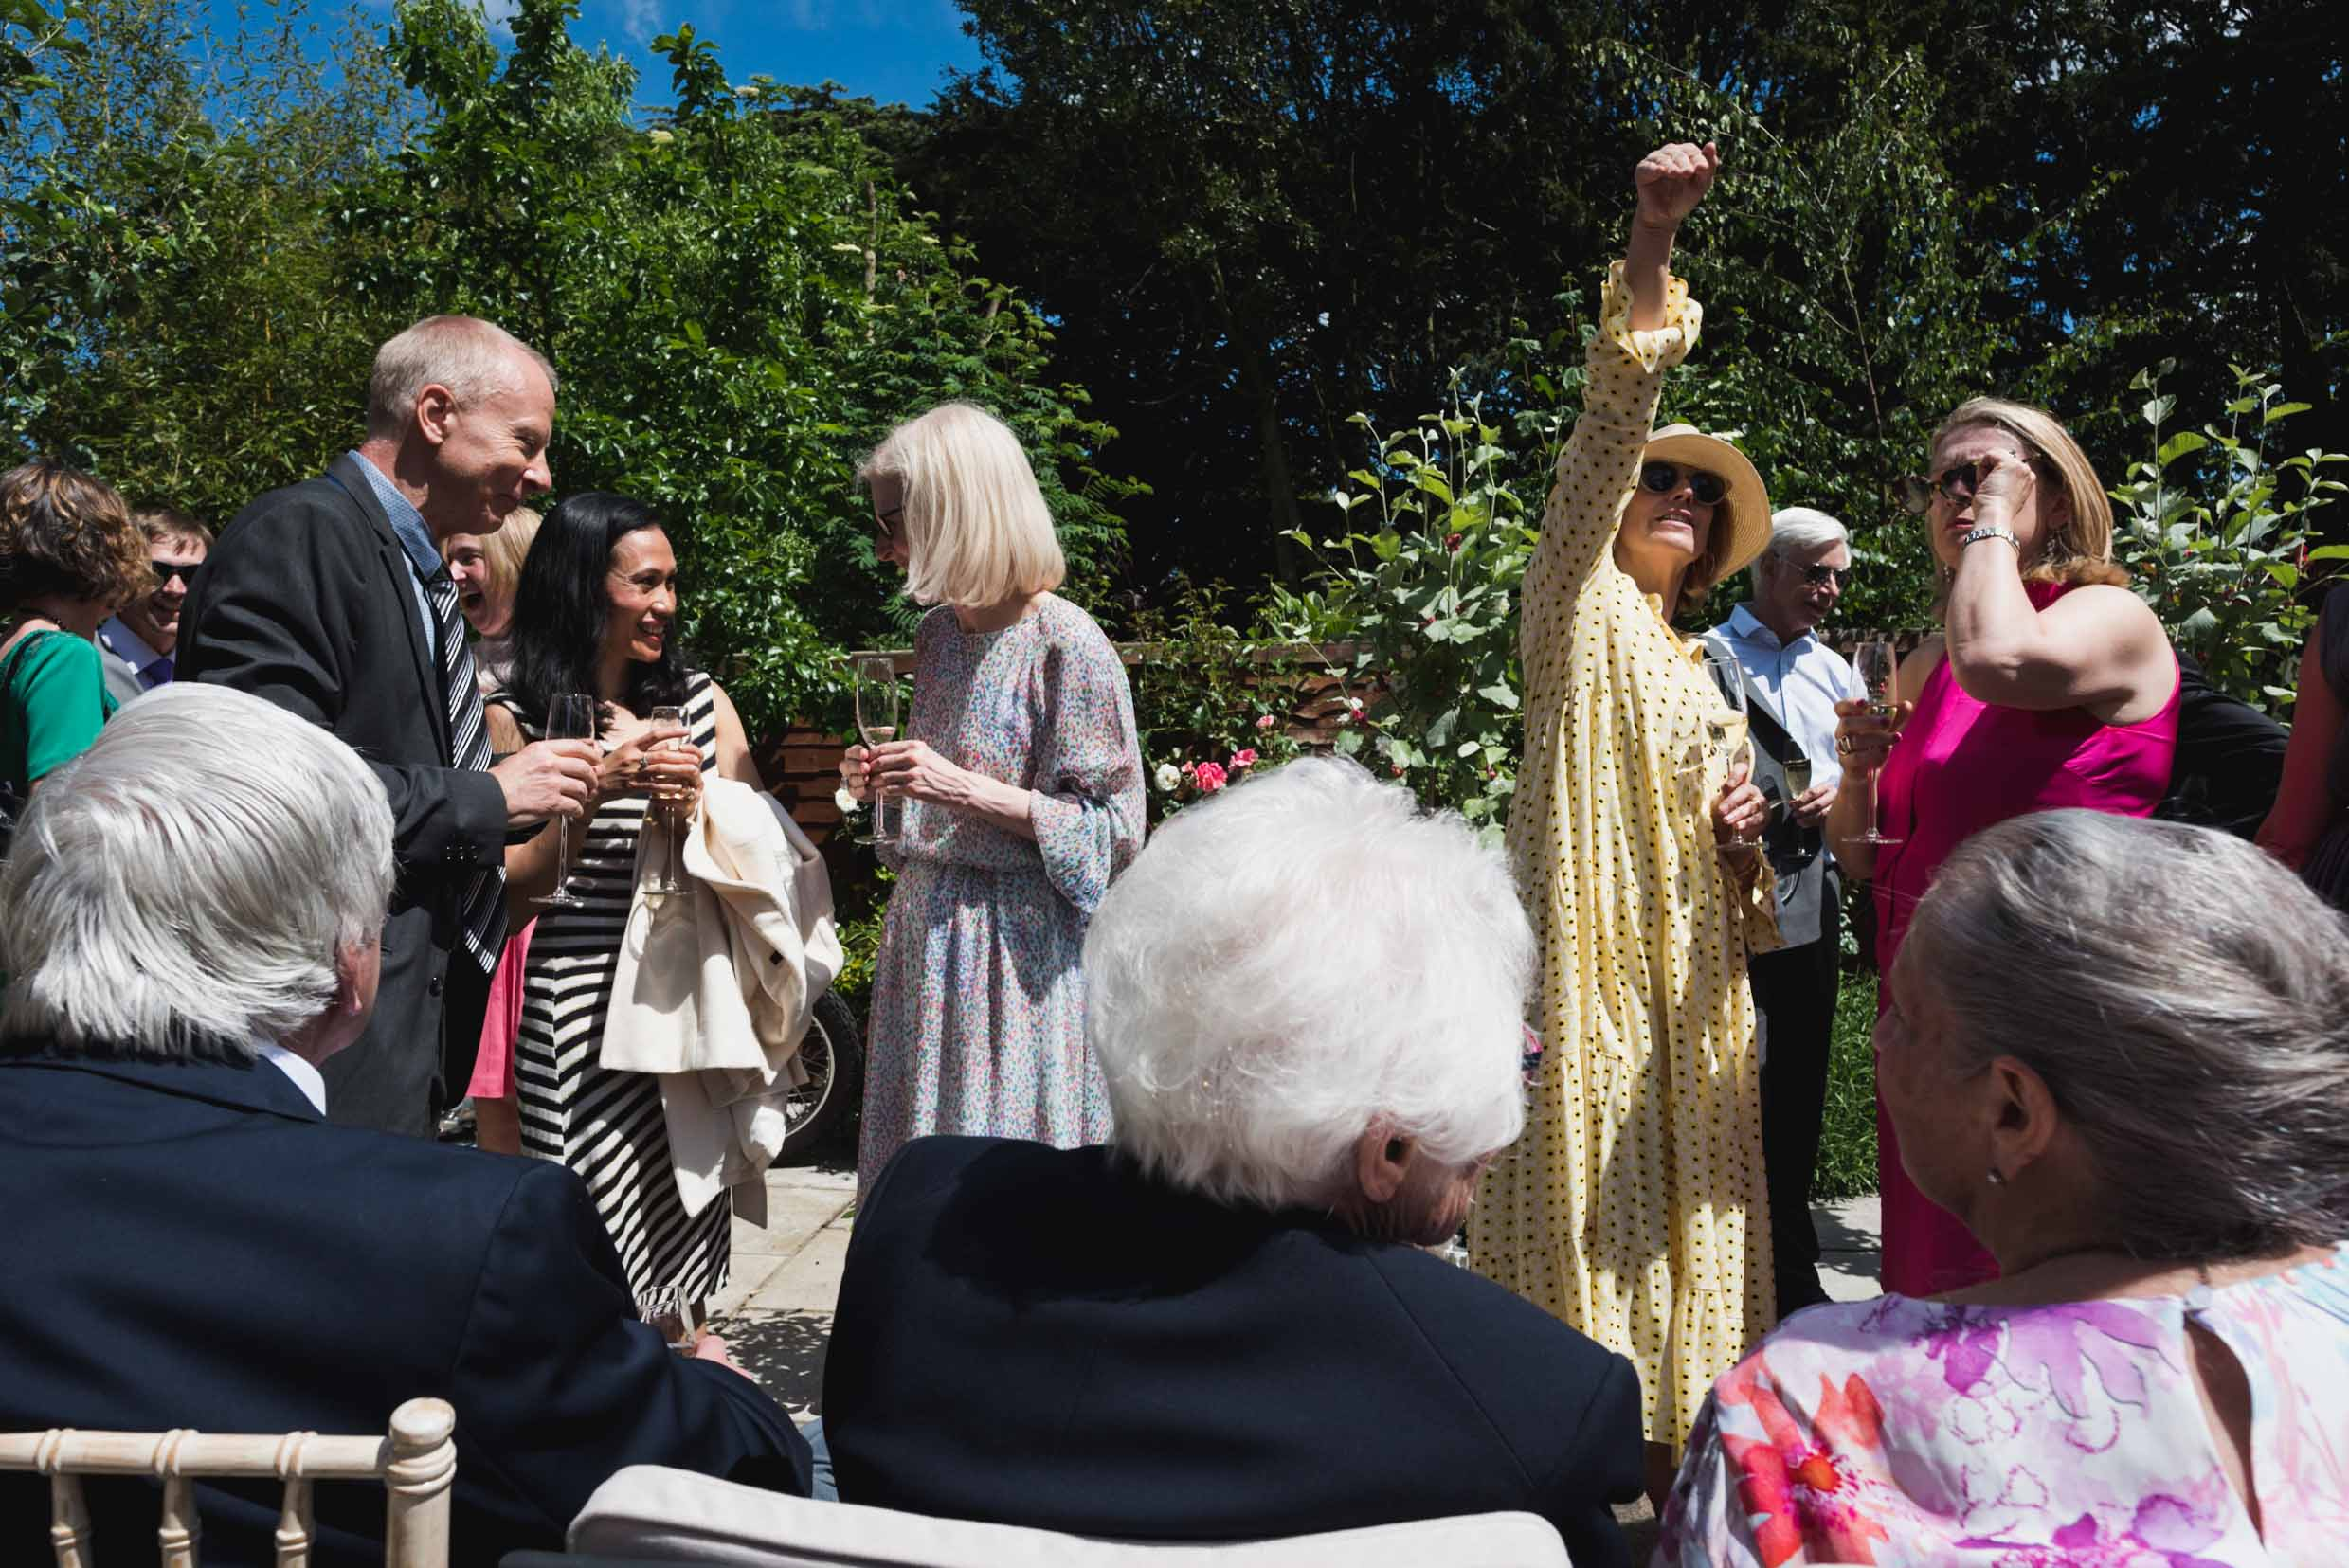 carine bea photography, guest in a wedding at back garden